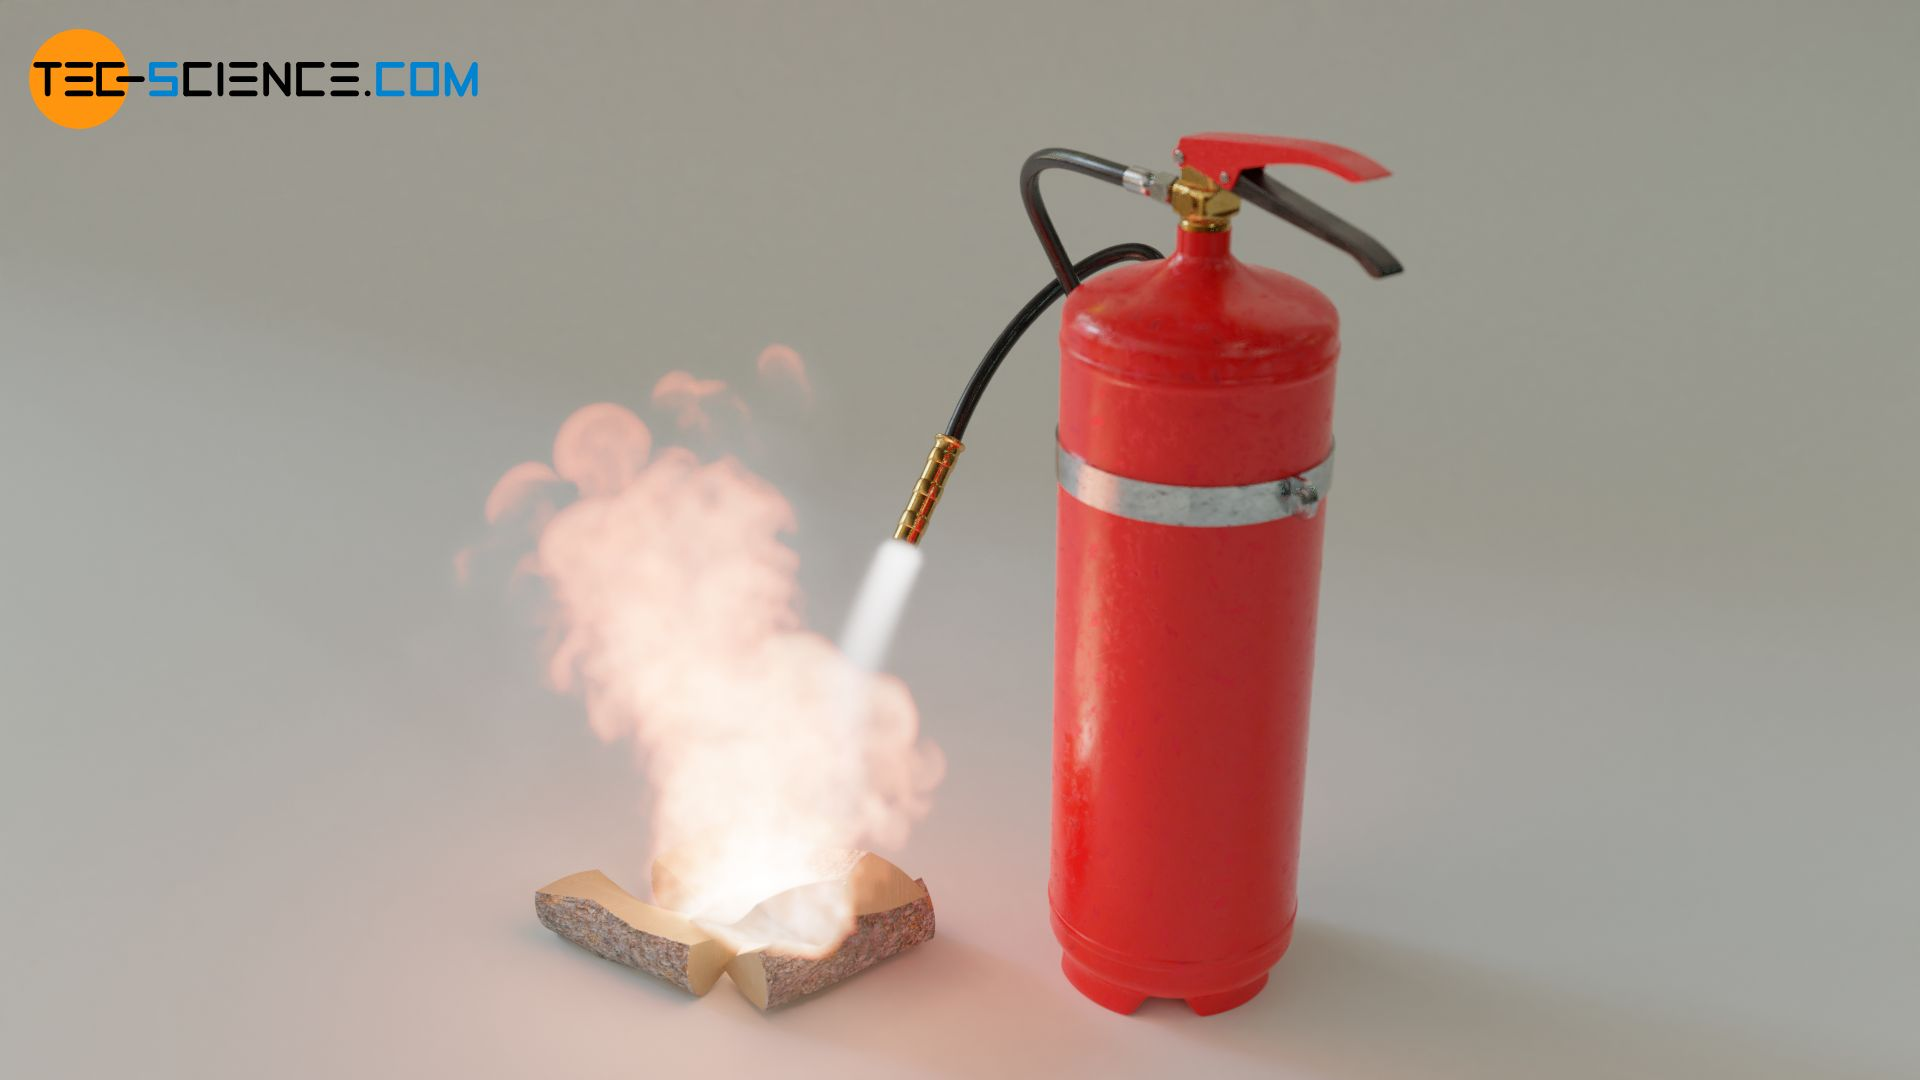 Extinguishing fire with water using a fire extinguisher